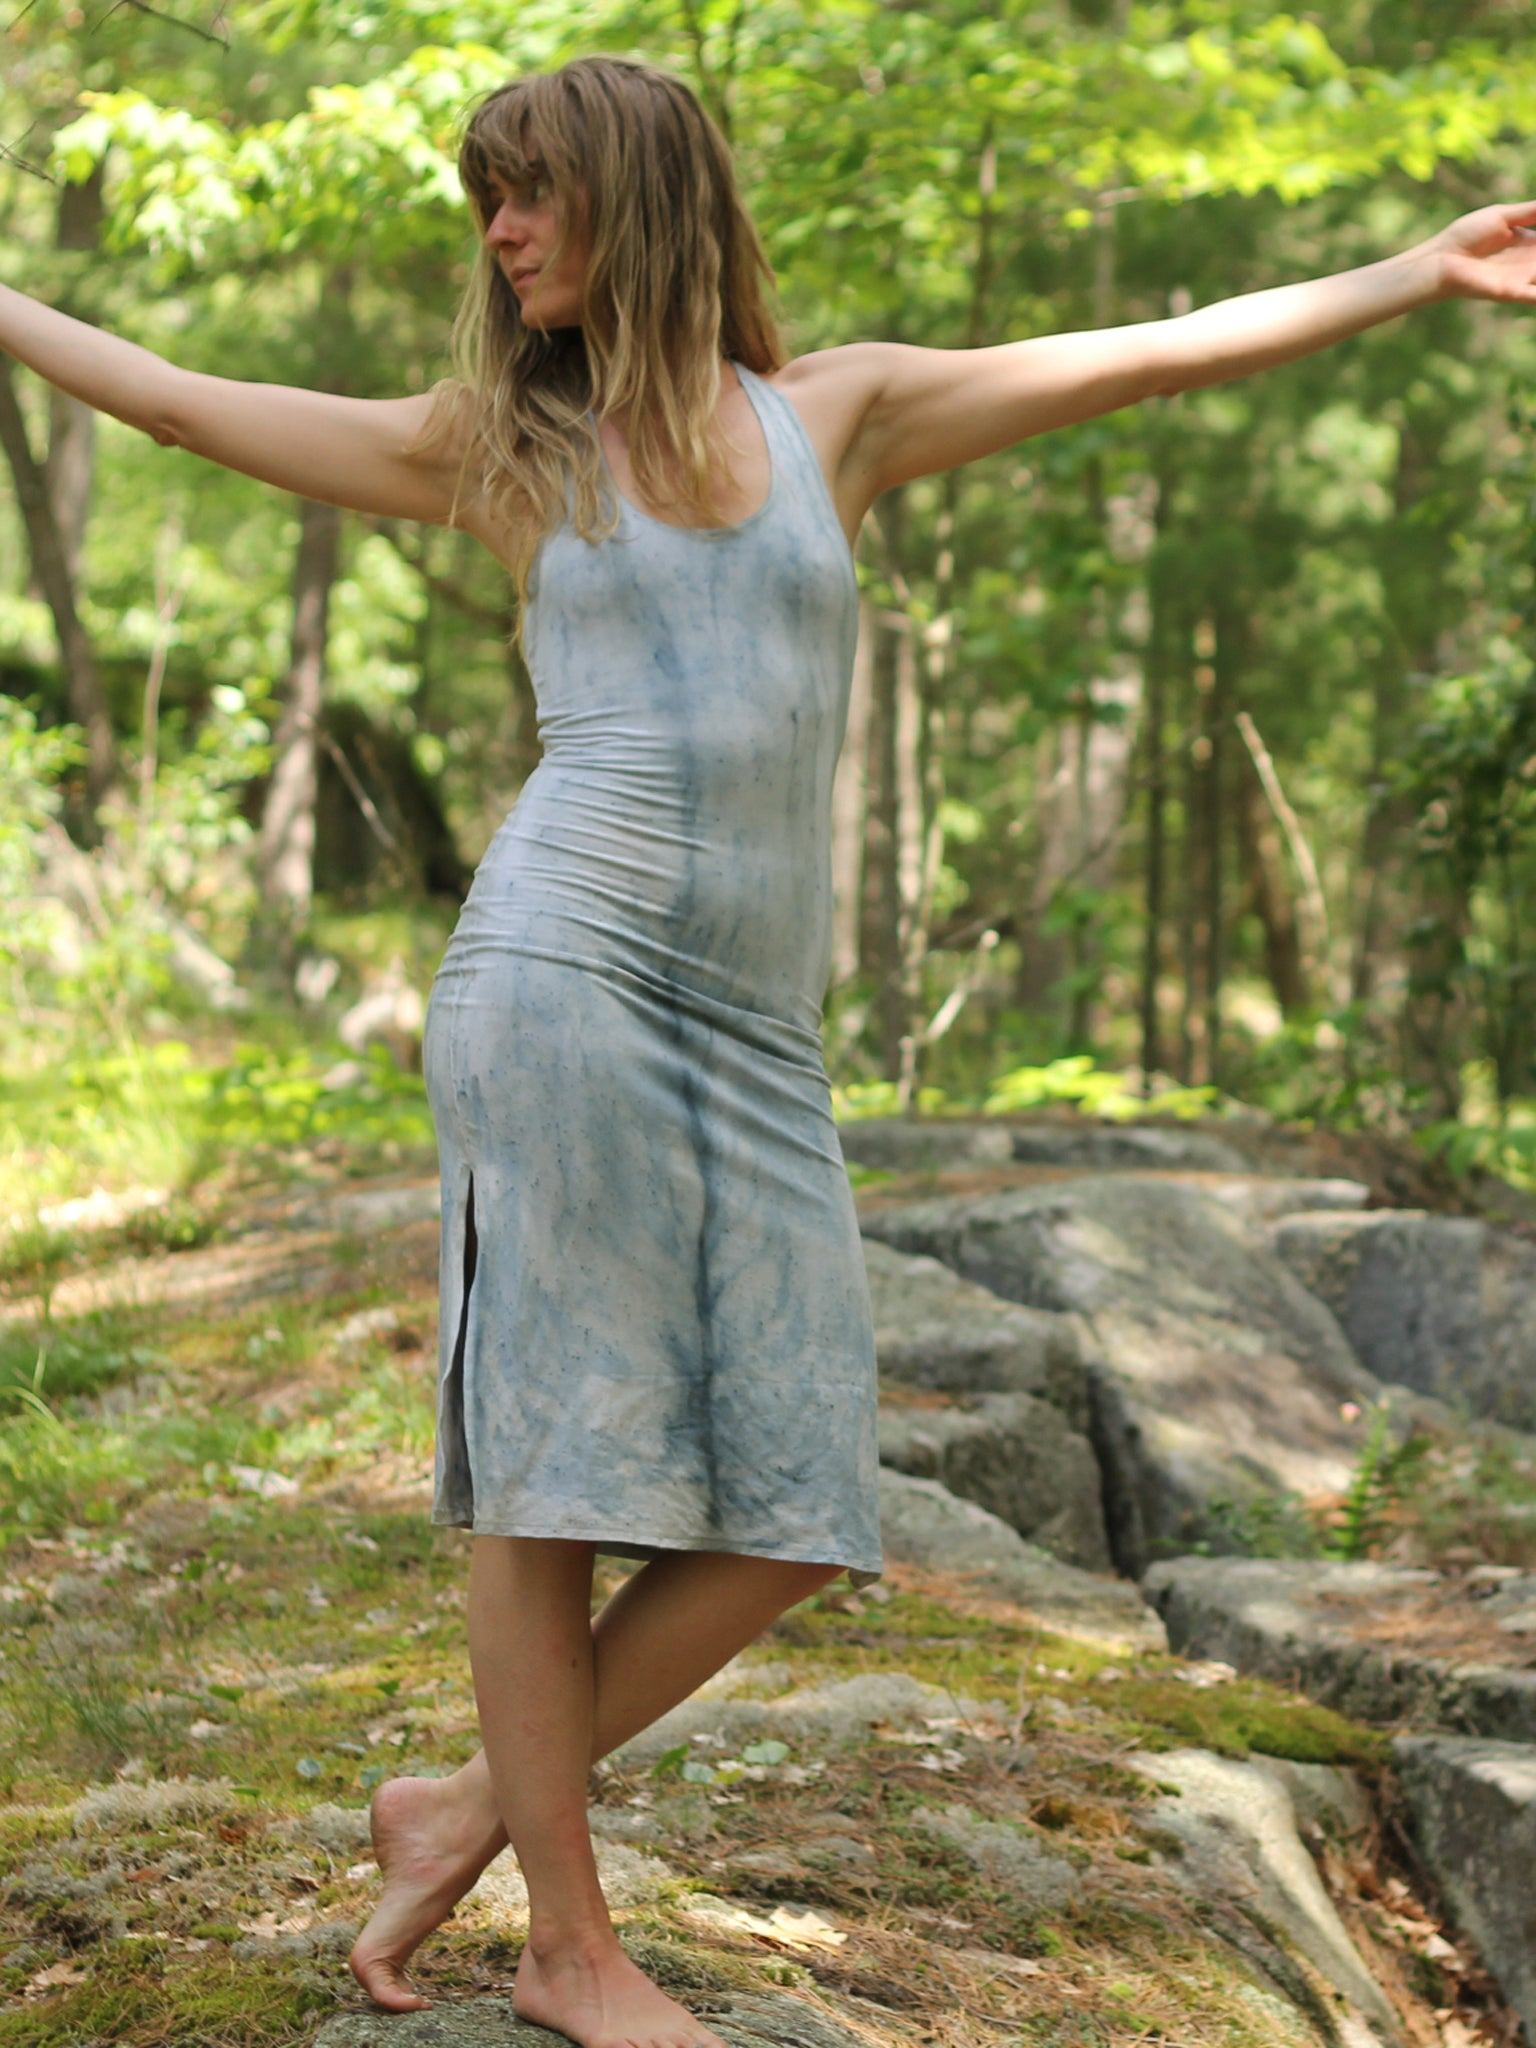 Racerback Tank Dress - Mid Length - Limited Edition Natural Dye